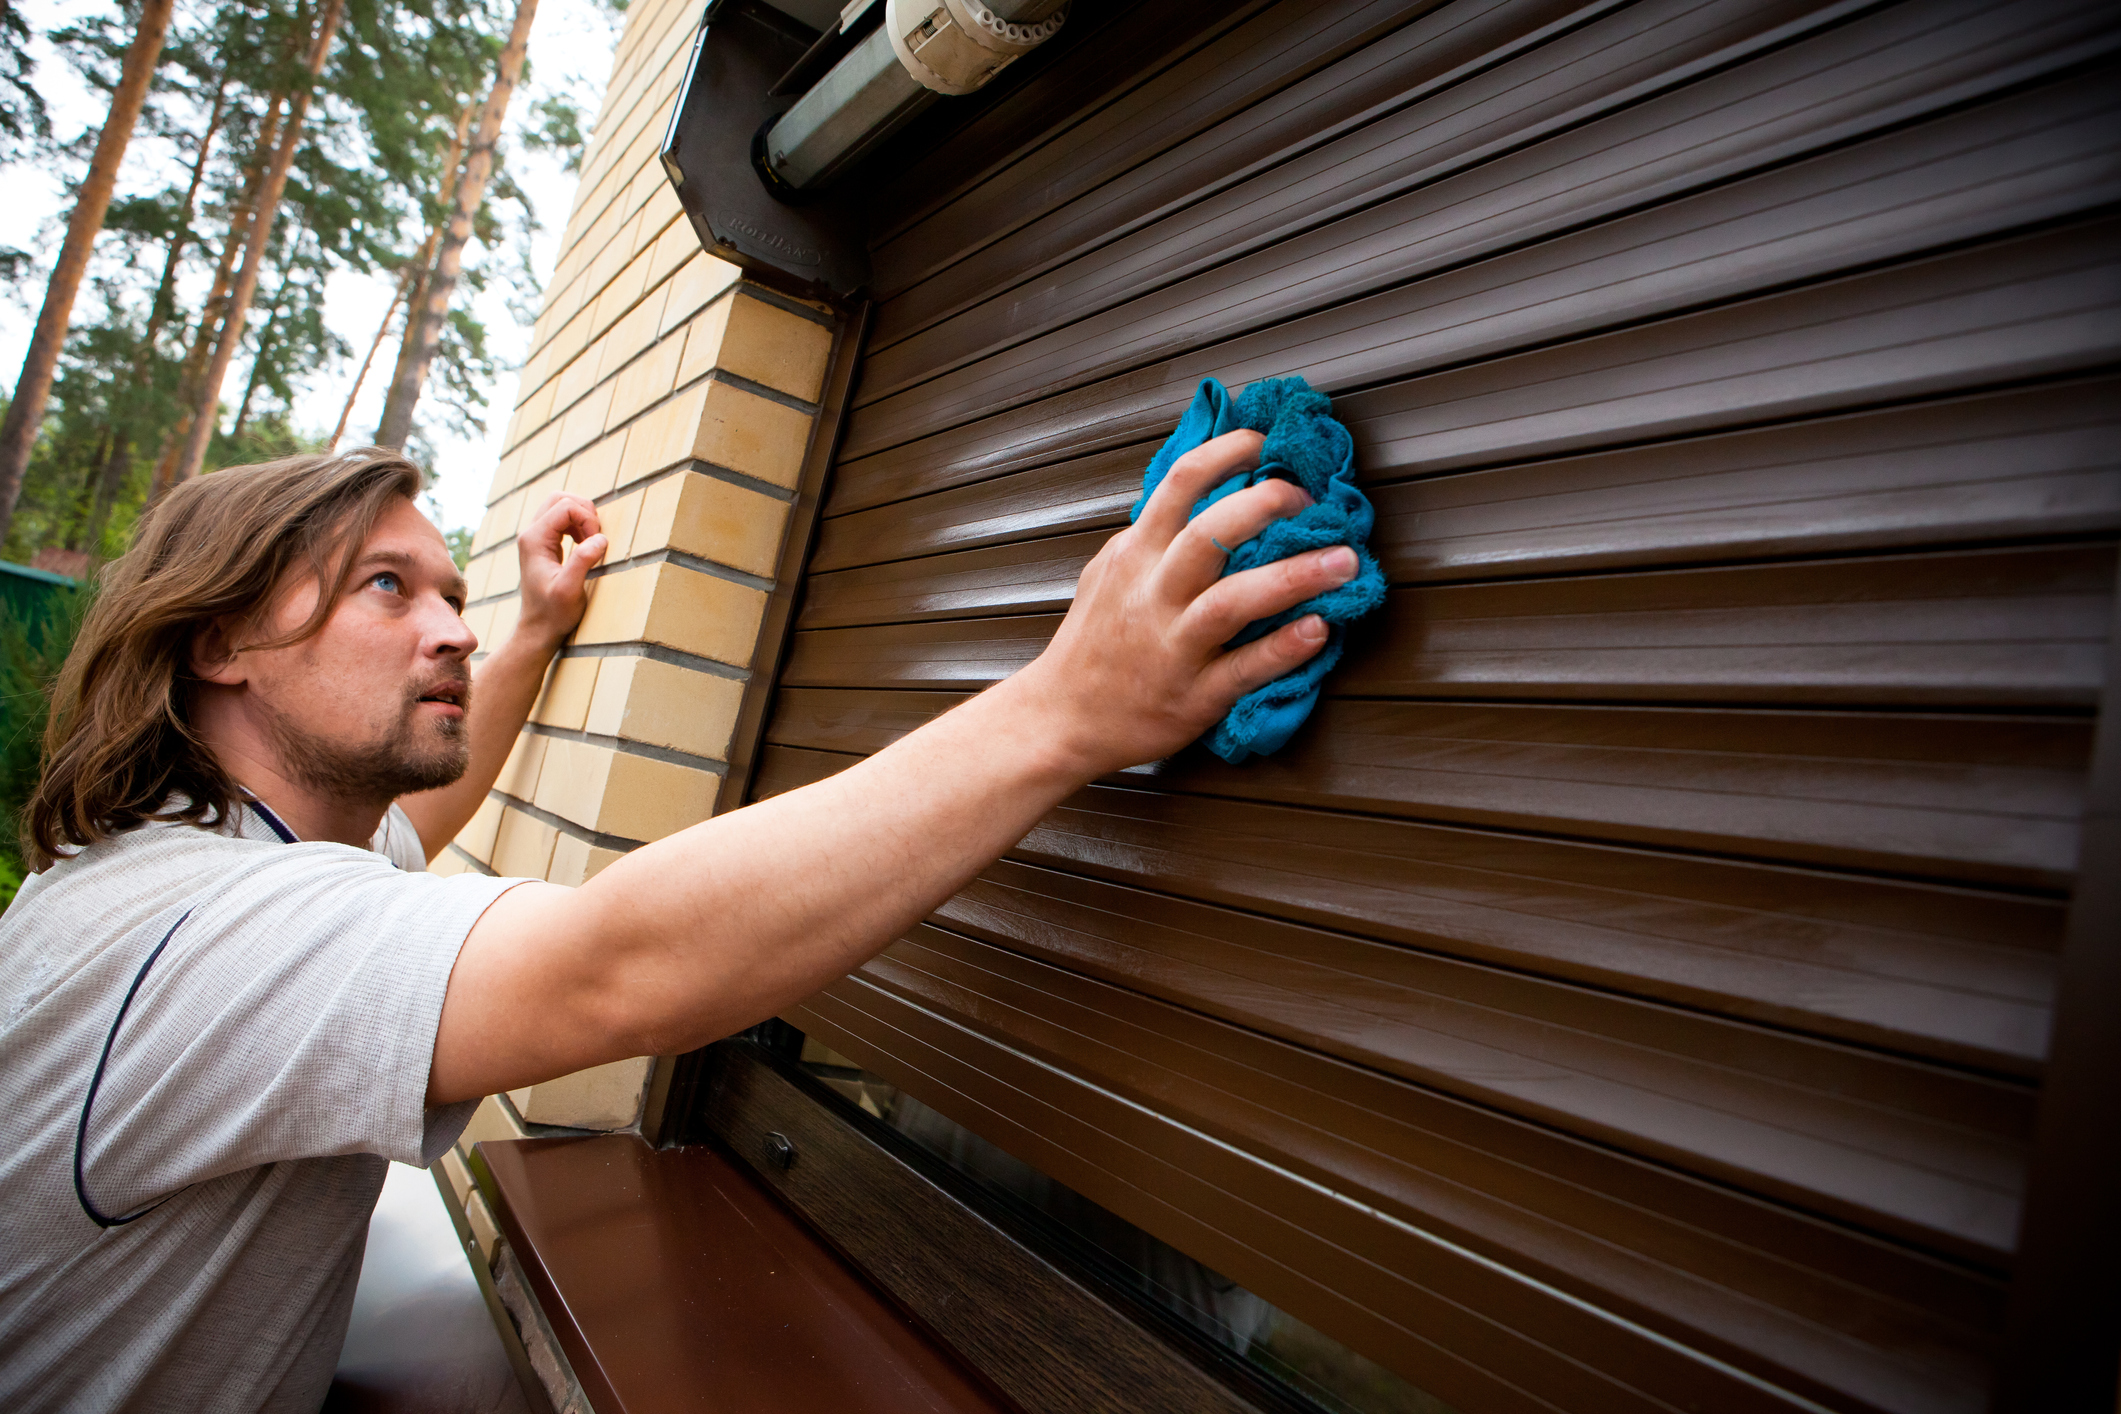 Man cleaning roll-up shutters